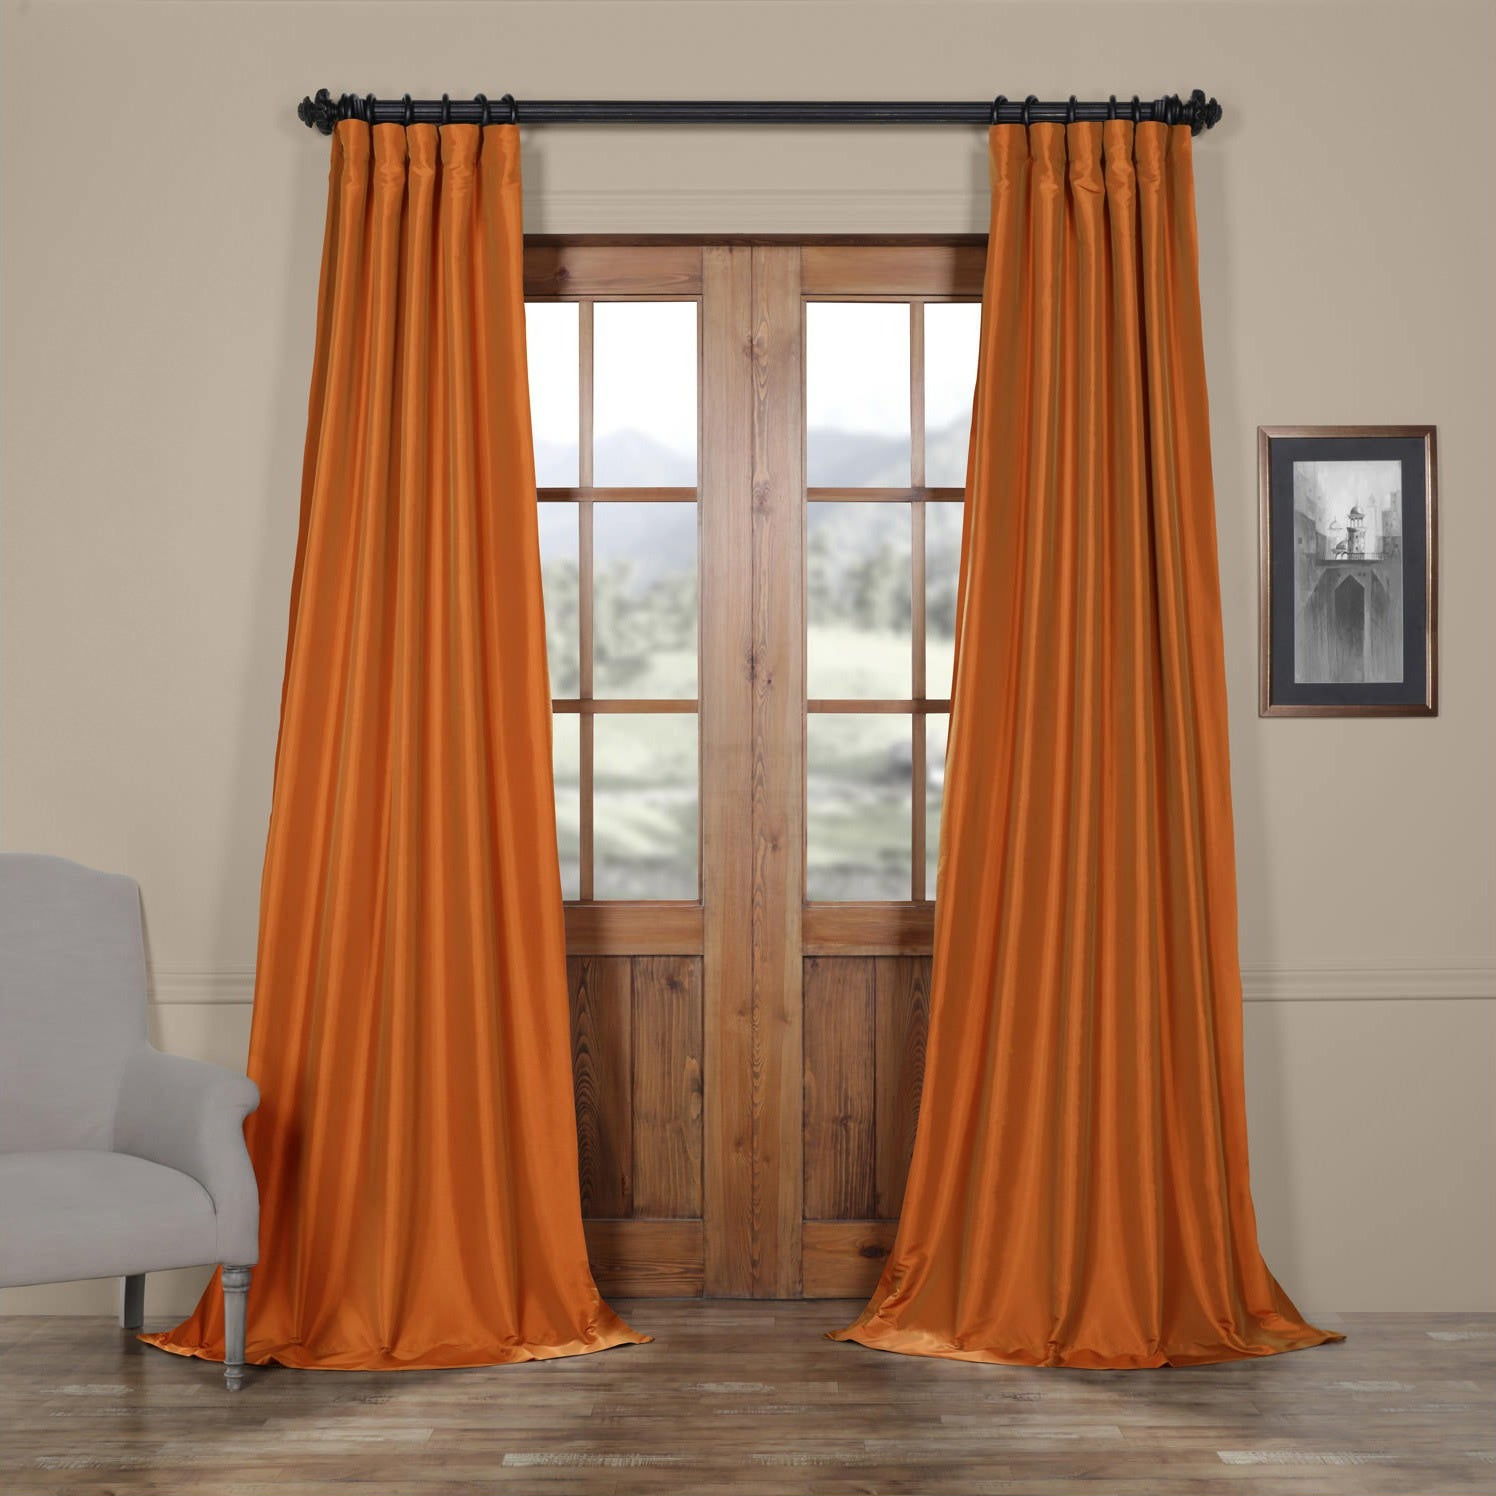 big with target valance curtains curtain size room sets and orange threshold window for modern rods matching of lots kitchen living panels small full